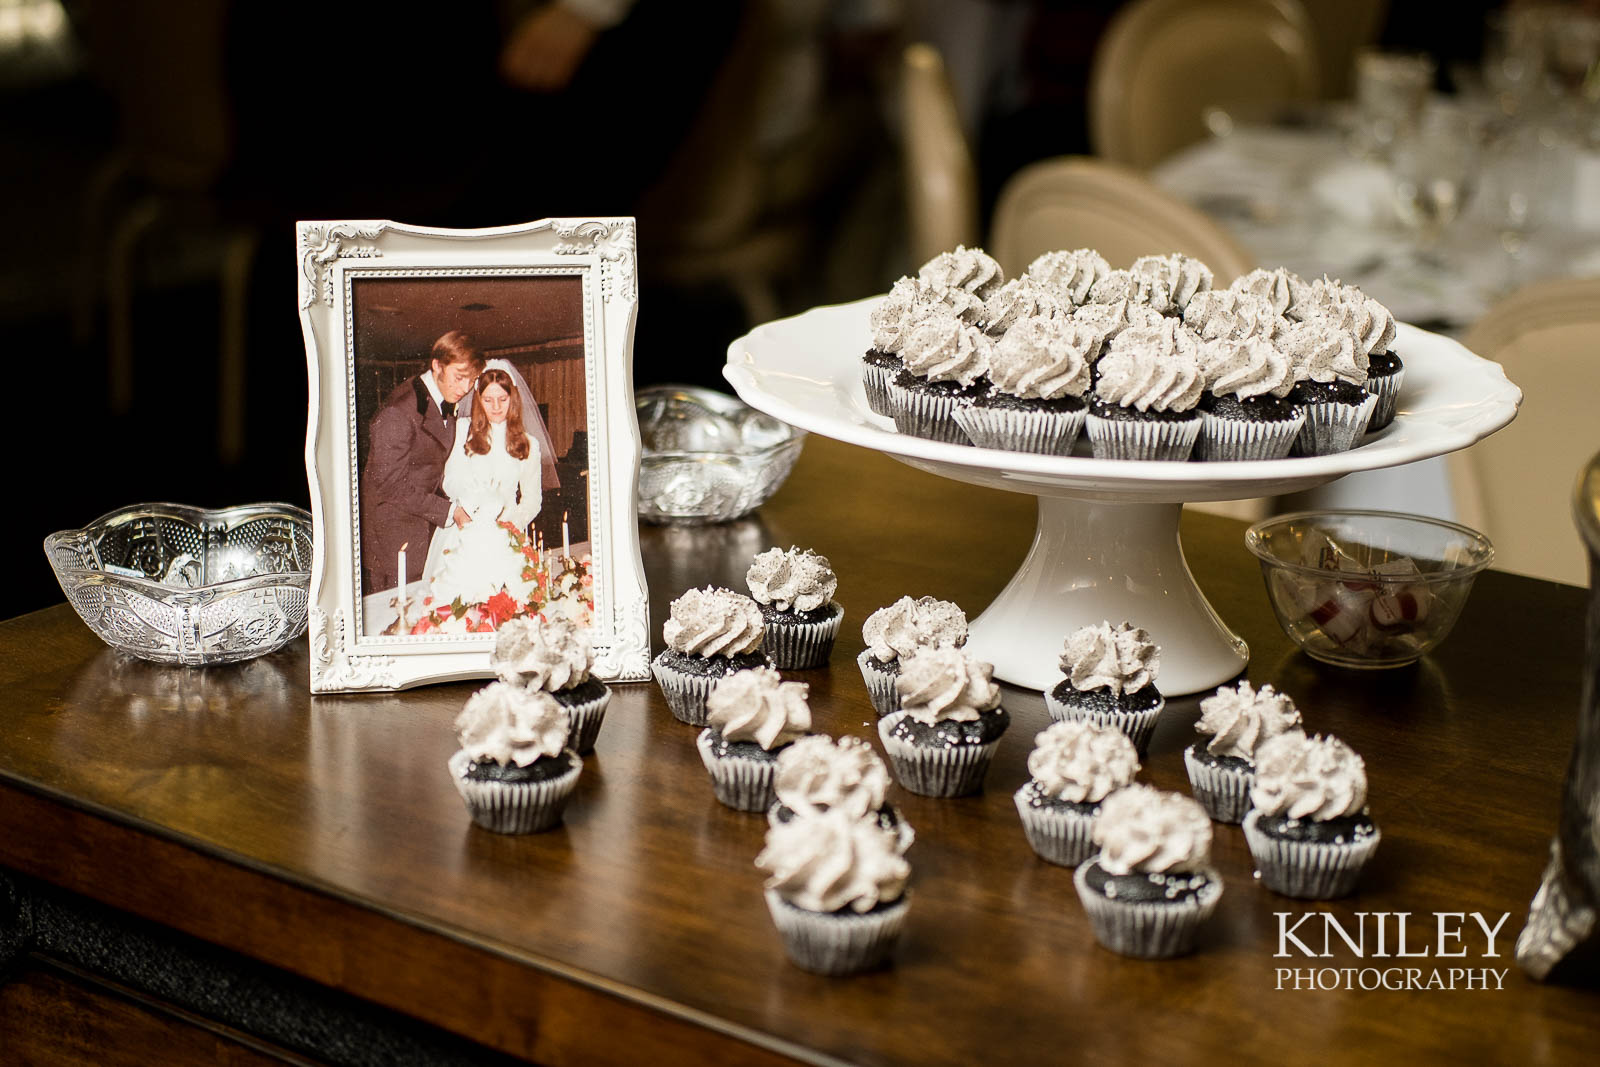 47-Plantation-Party-House-springtime-wedding-Rochester-NY-Kniley-Photography.jpg